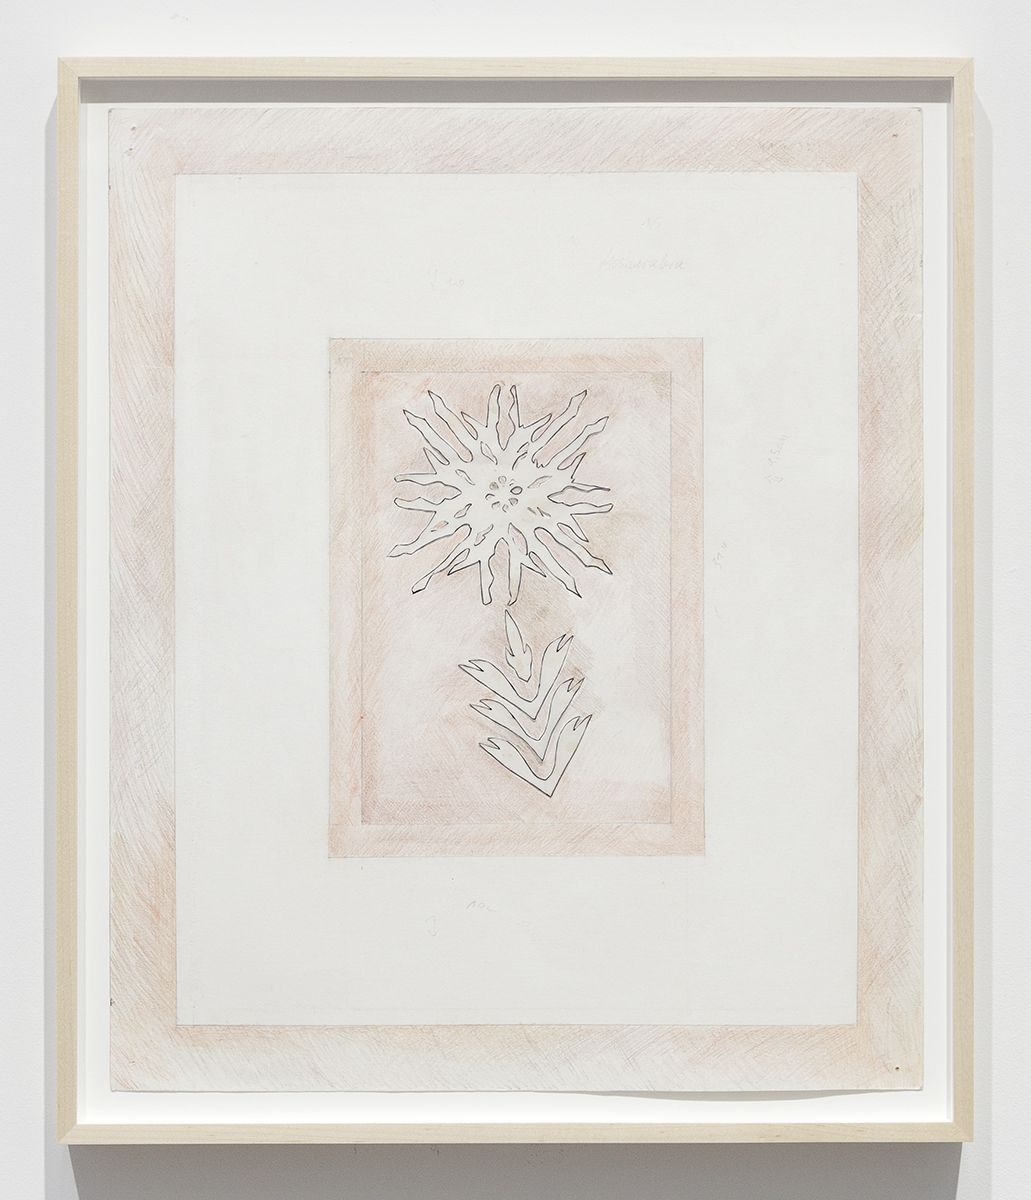 Katharina Wulff Untitled, 2014 Pencil, colored pencil, ink, transparent paper on paper Paper: 23 5/8 x 19 9/16 inches (60 x 49.7 cm) Frame: 26 x 22 x 1 1/2 inches (66 x 55.9 x 3.8 cm)